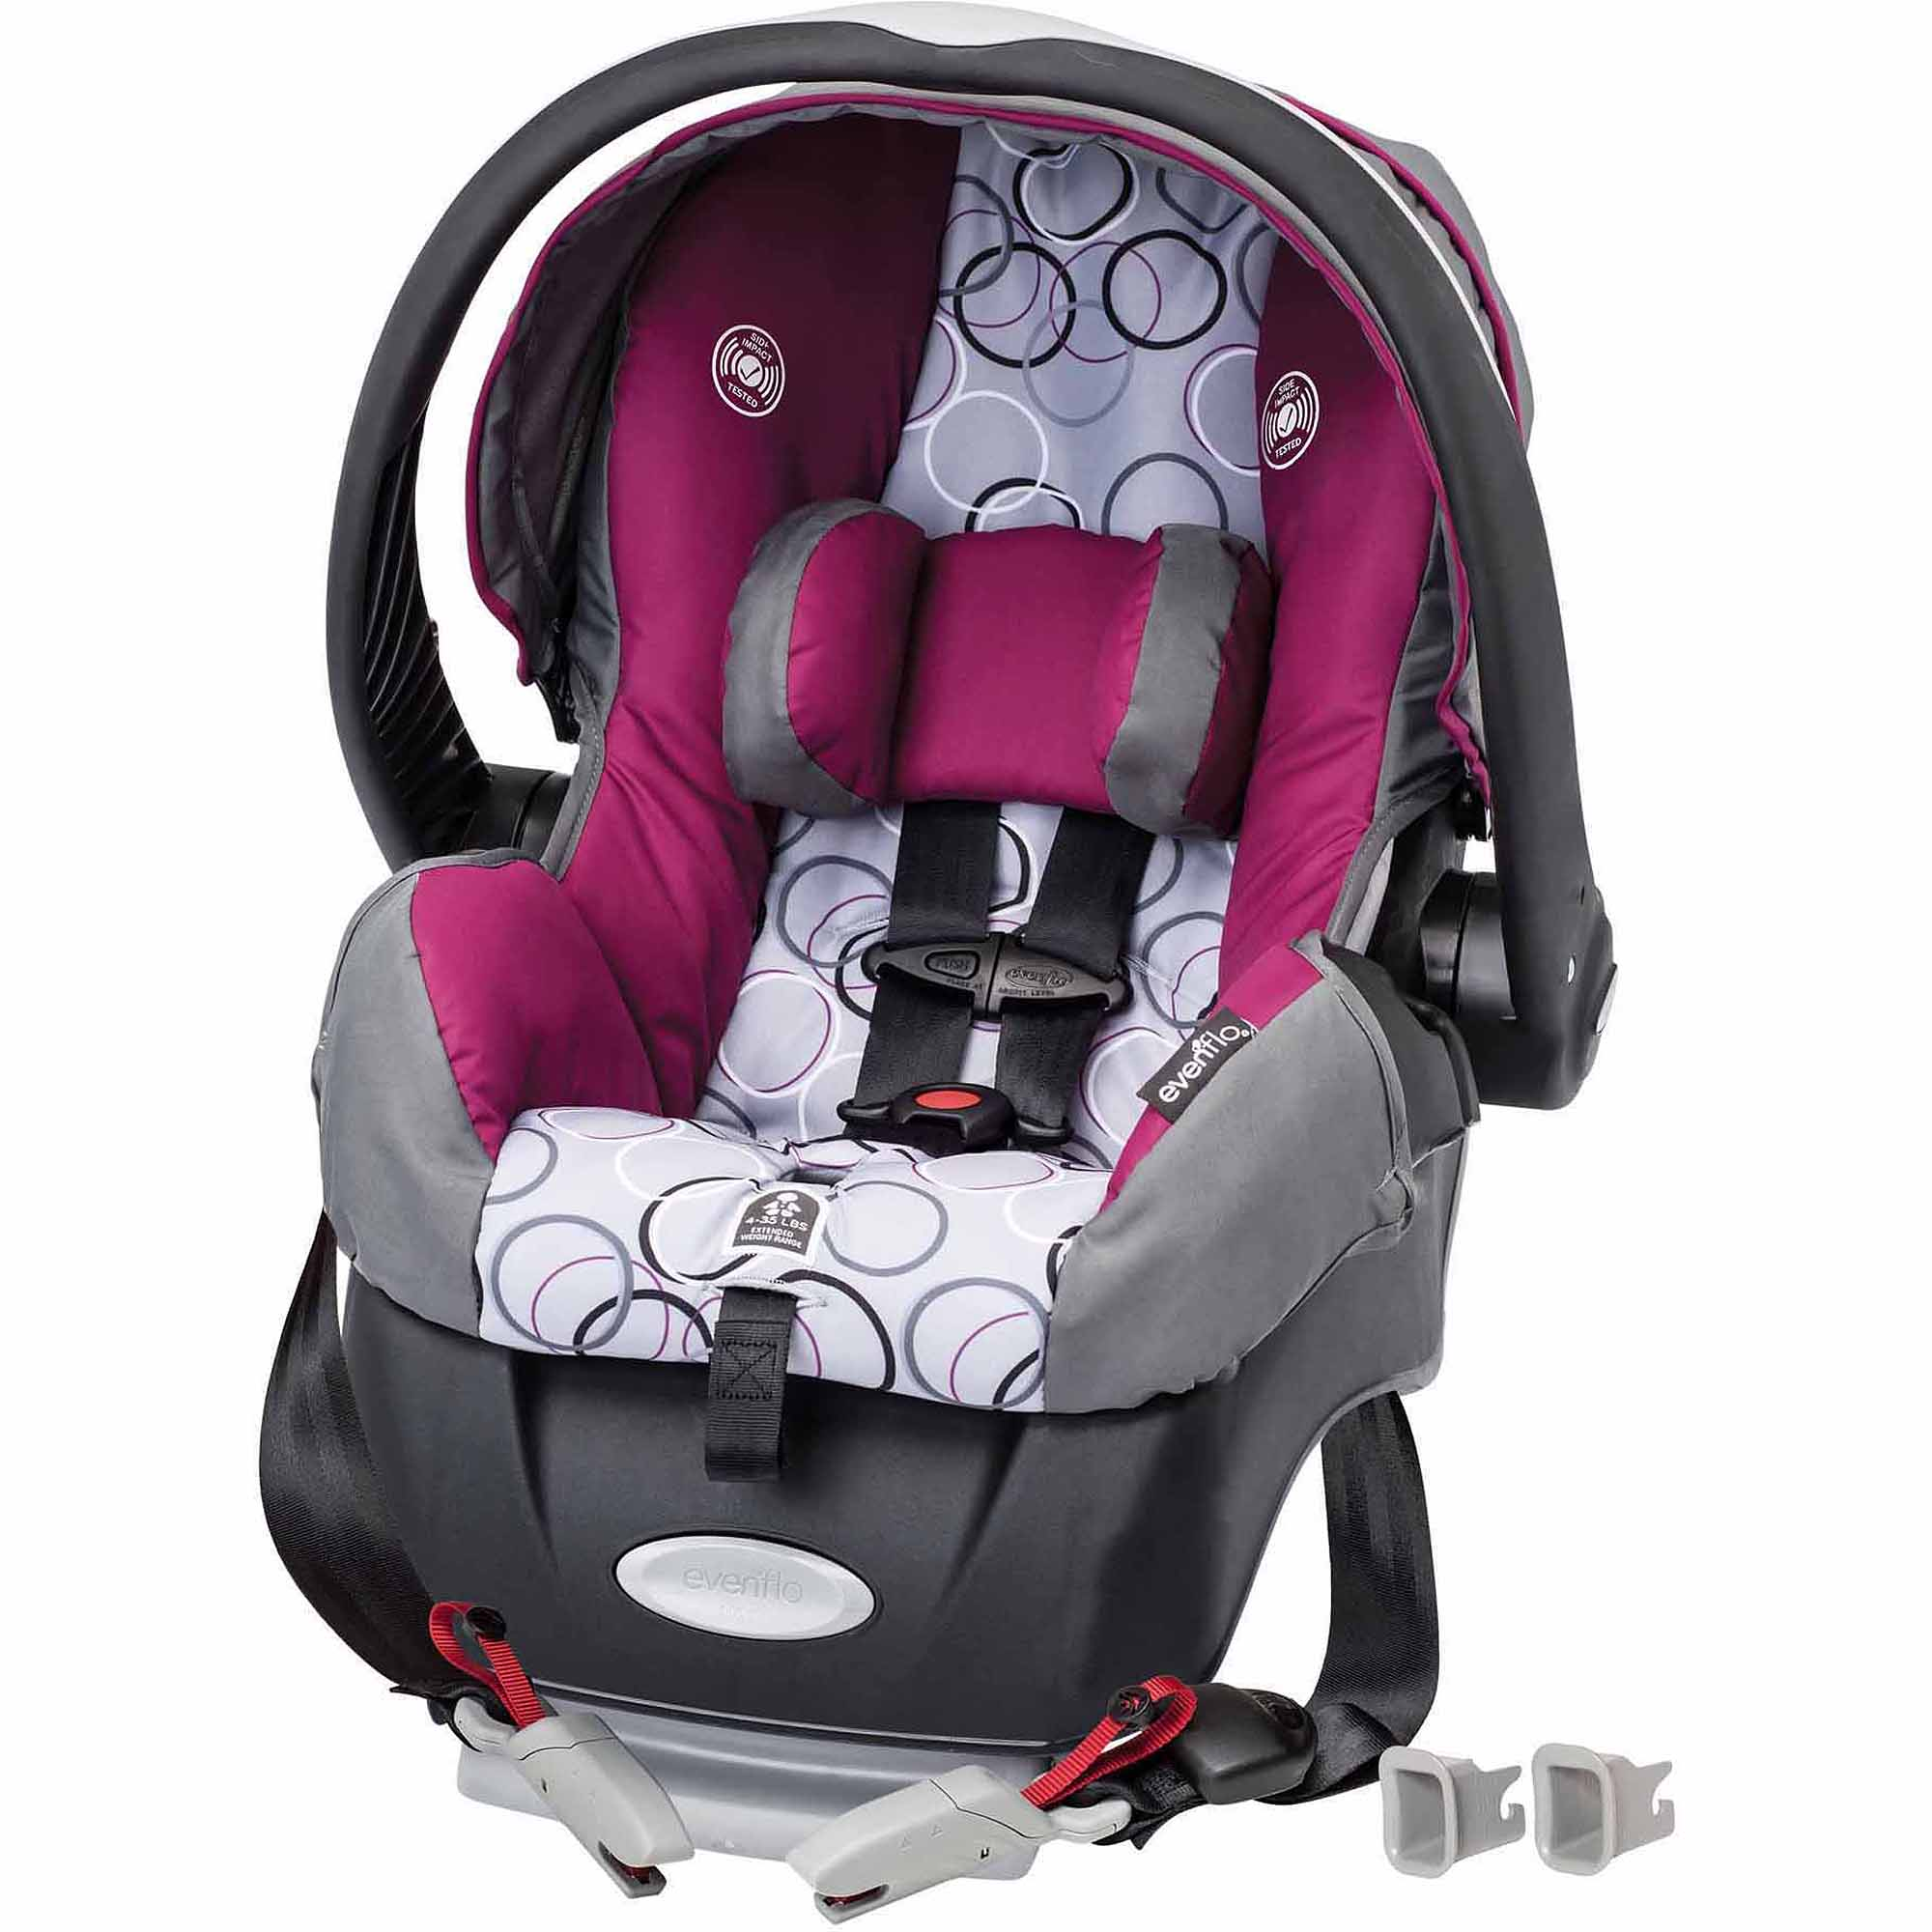 Evenflo Embrace Select Infant Car Seat with Sure Safe Installation, Choose Your Pattern